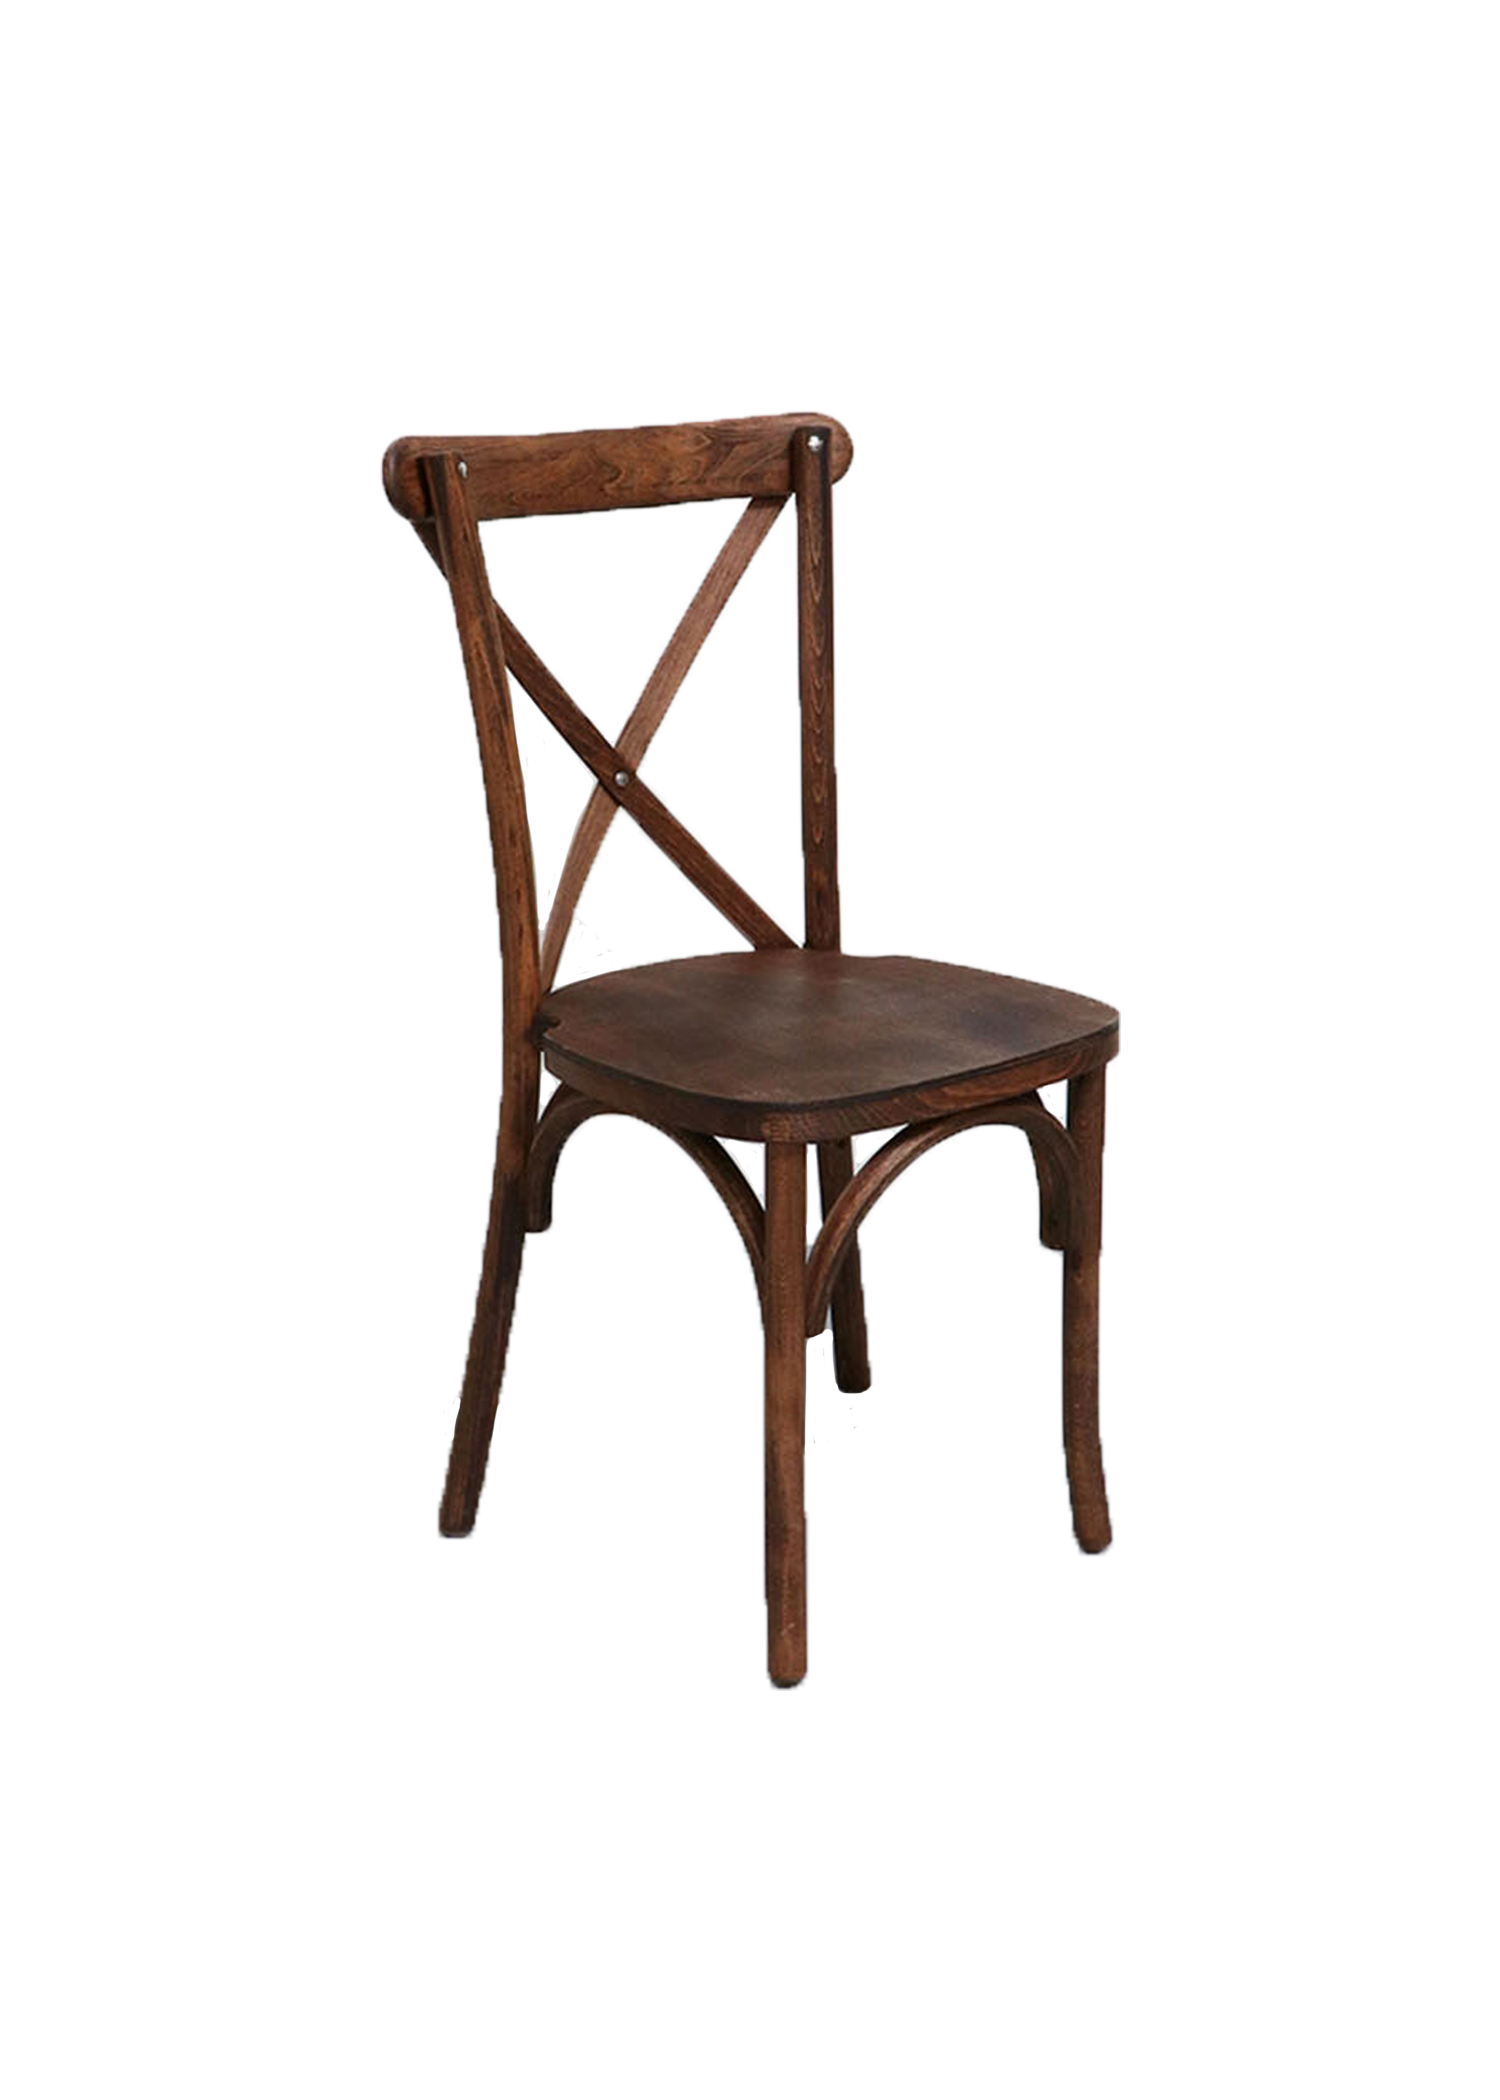 Mahogany Cross-Back Chair